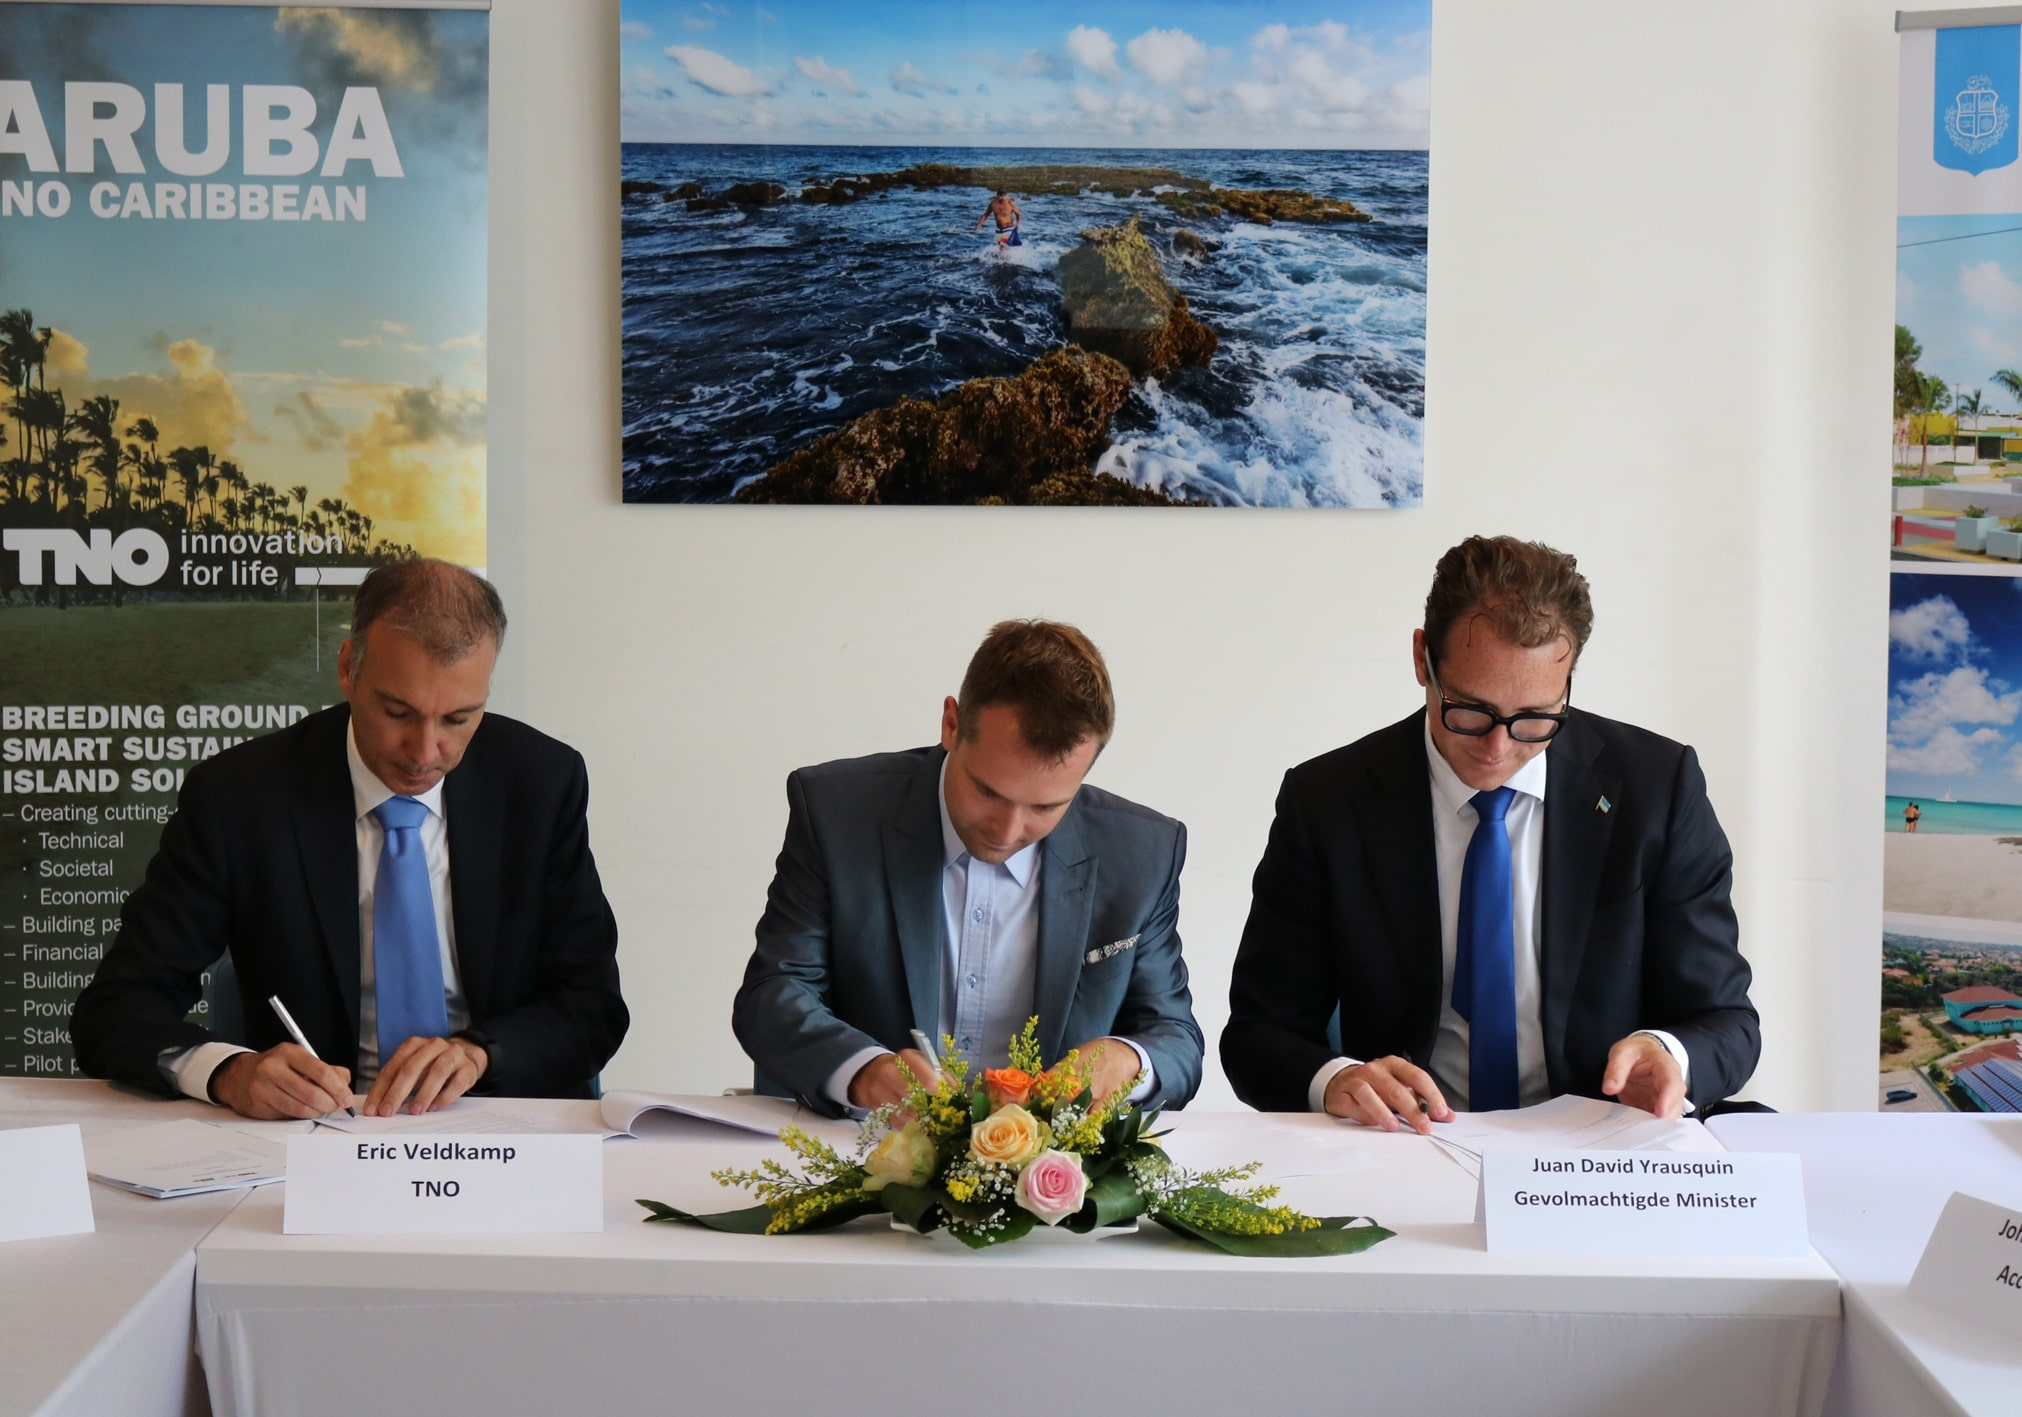 FlexSol Solutions joins coalition to make Aruba sustainable